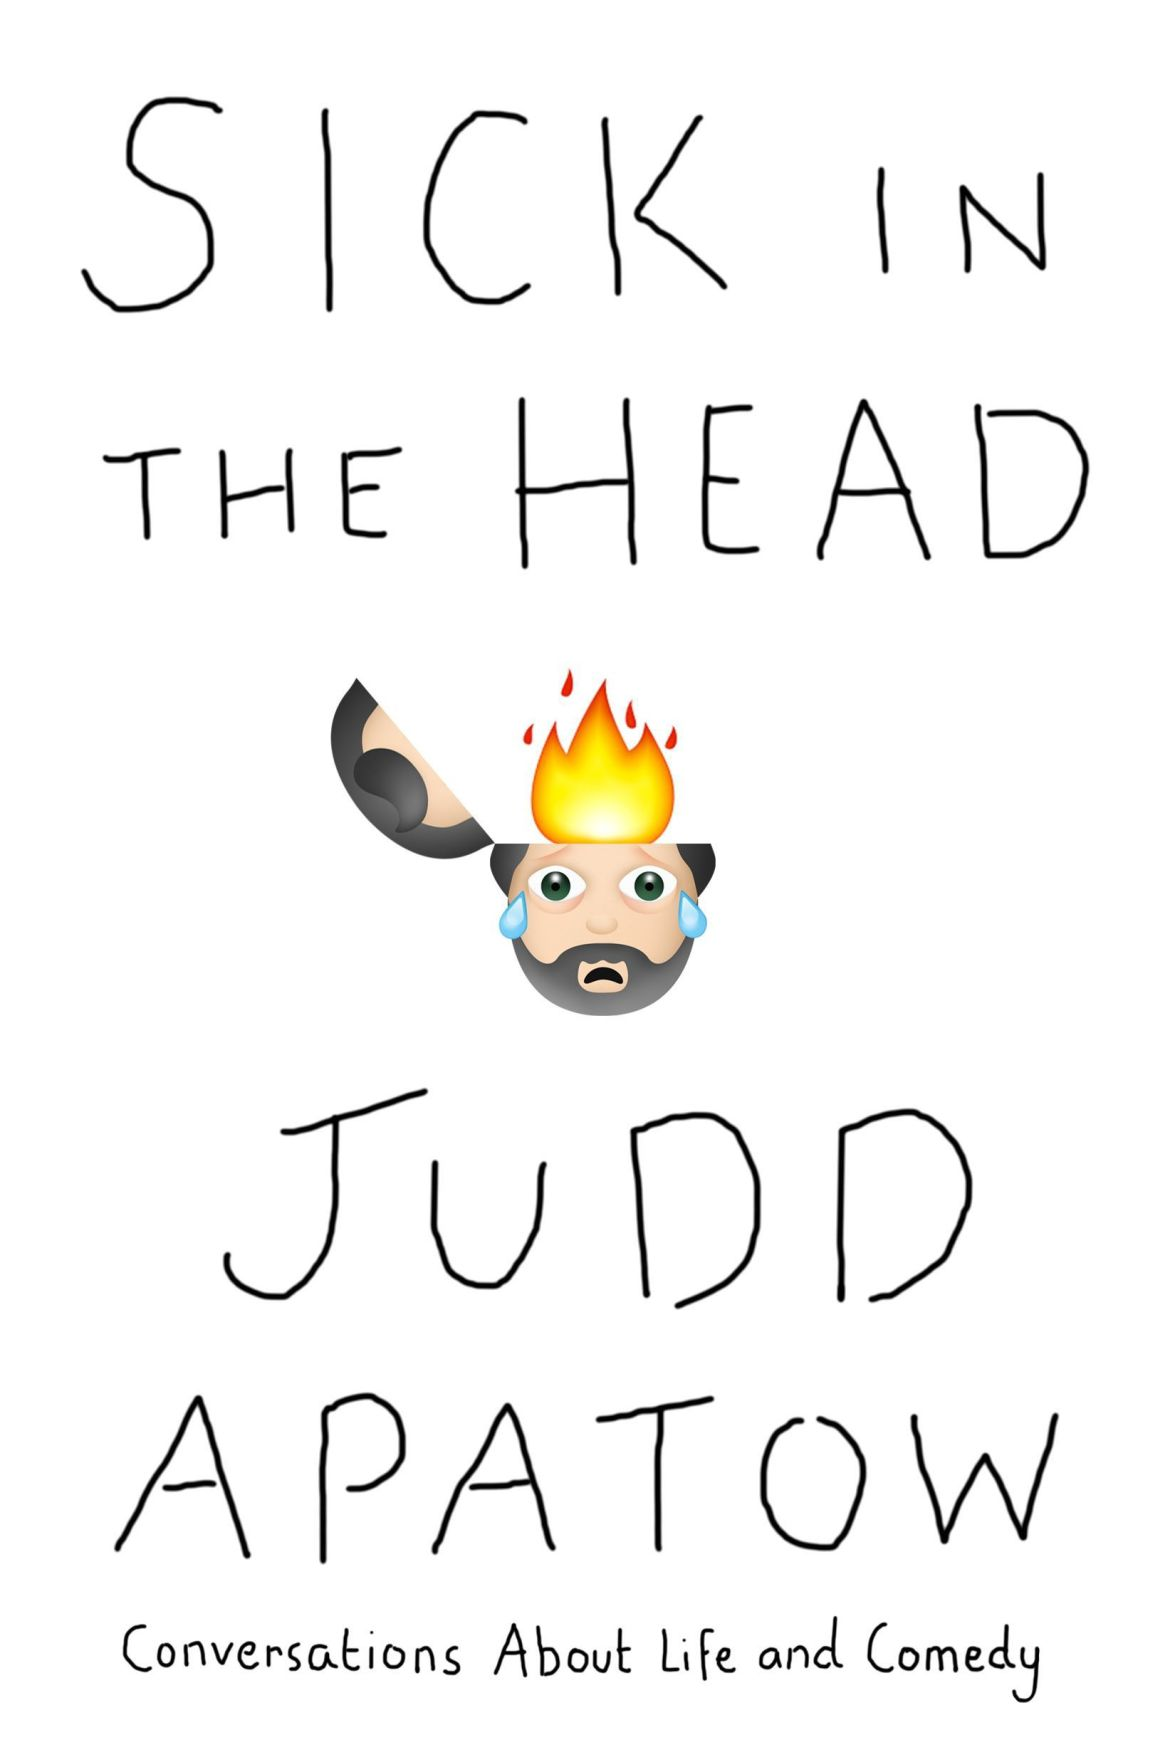 Judd Apatow reflects on a life in comedy in new book